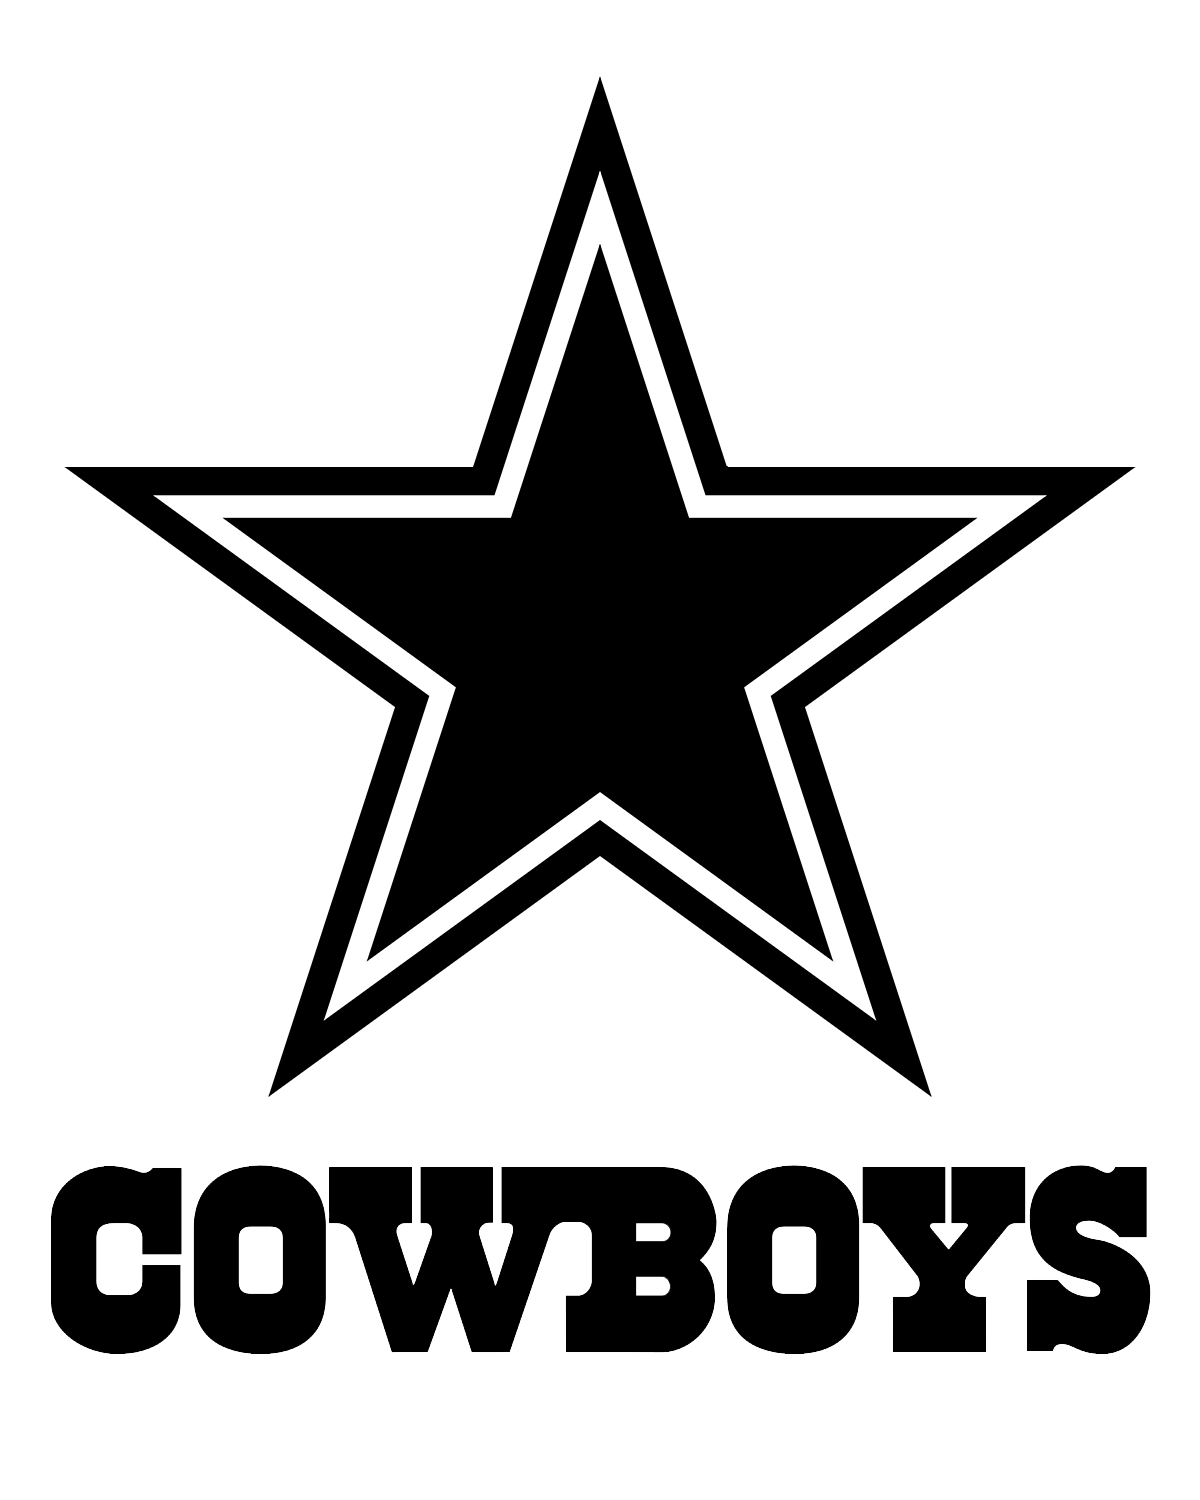 png freeuse download Symbol tattoo star images. Dallas cowboys clipart